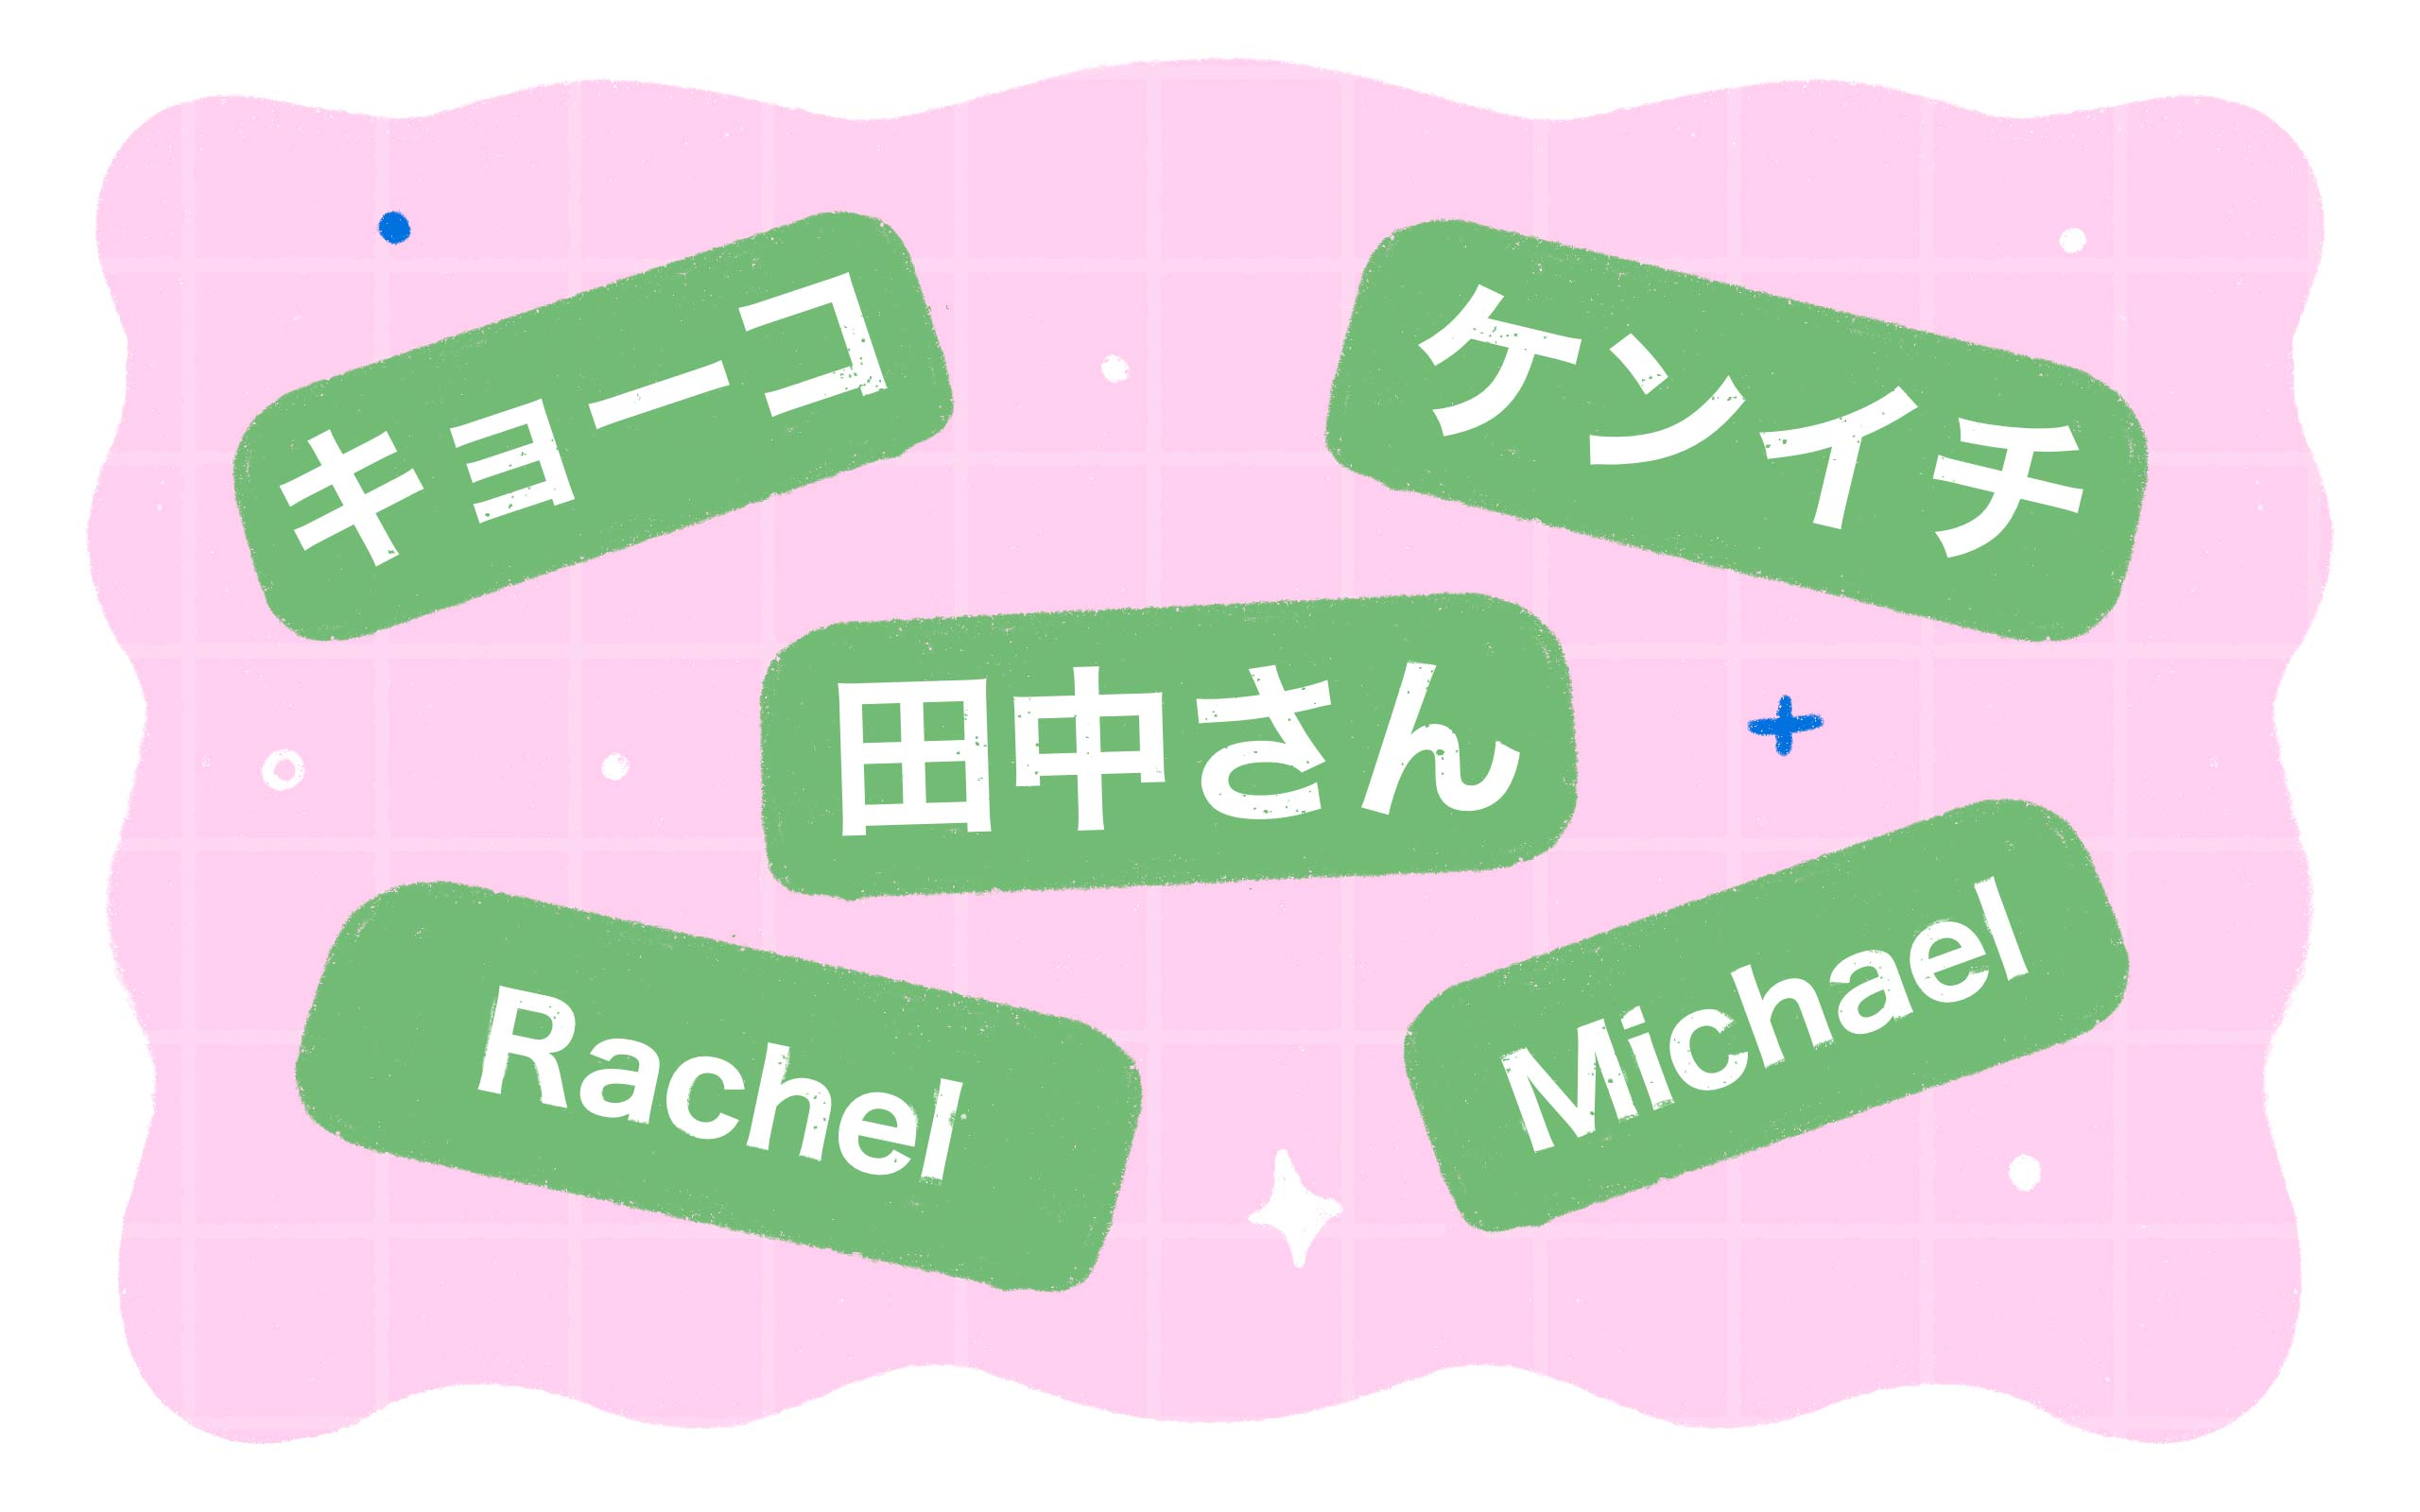 examples of names such as キョーコ, ケンイチ, 田中さん, Rachel and Michael